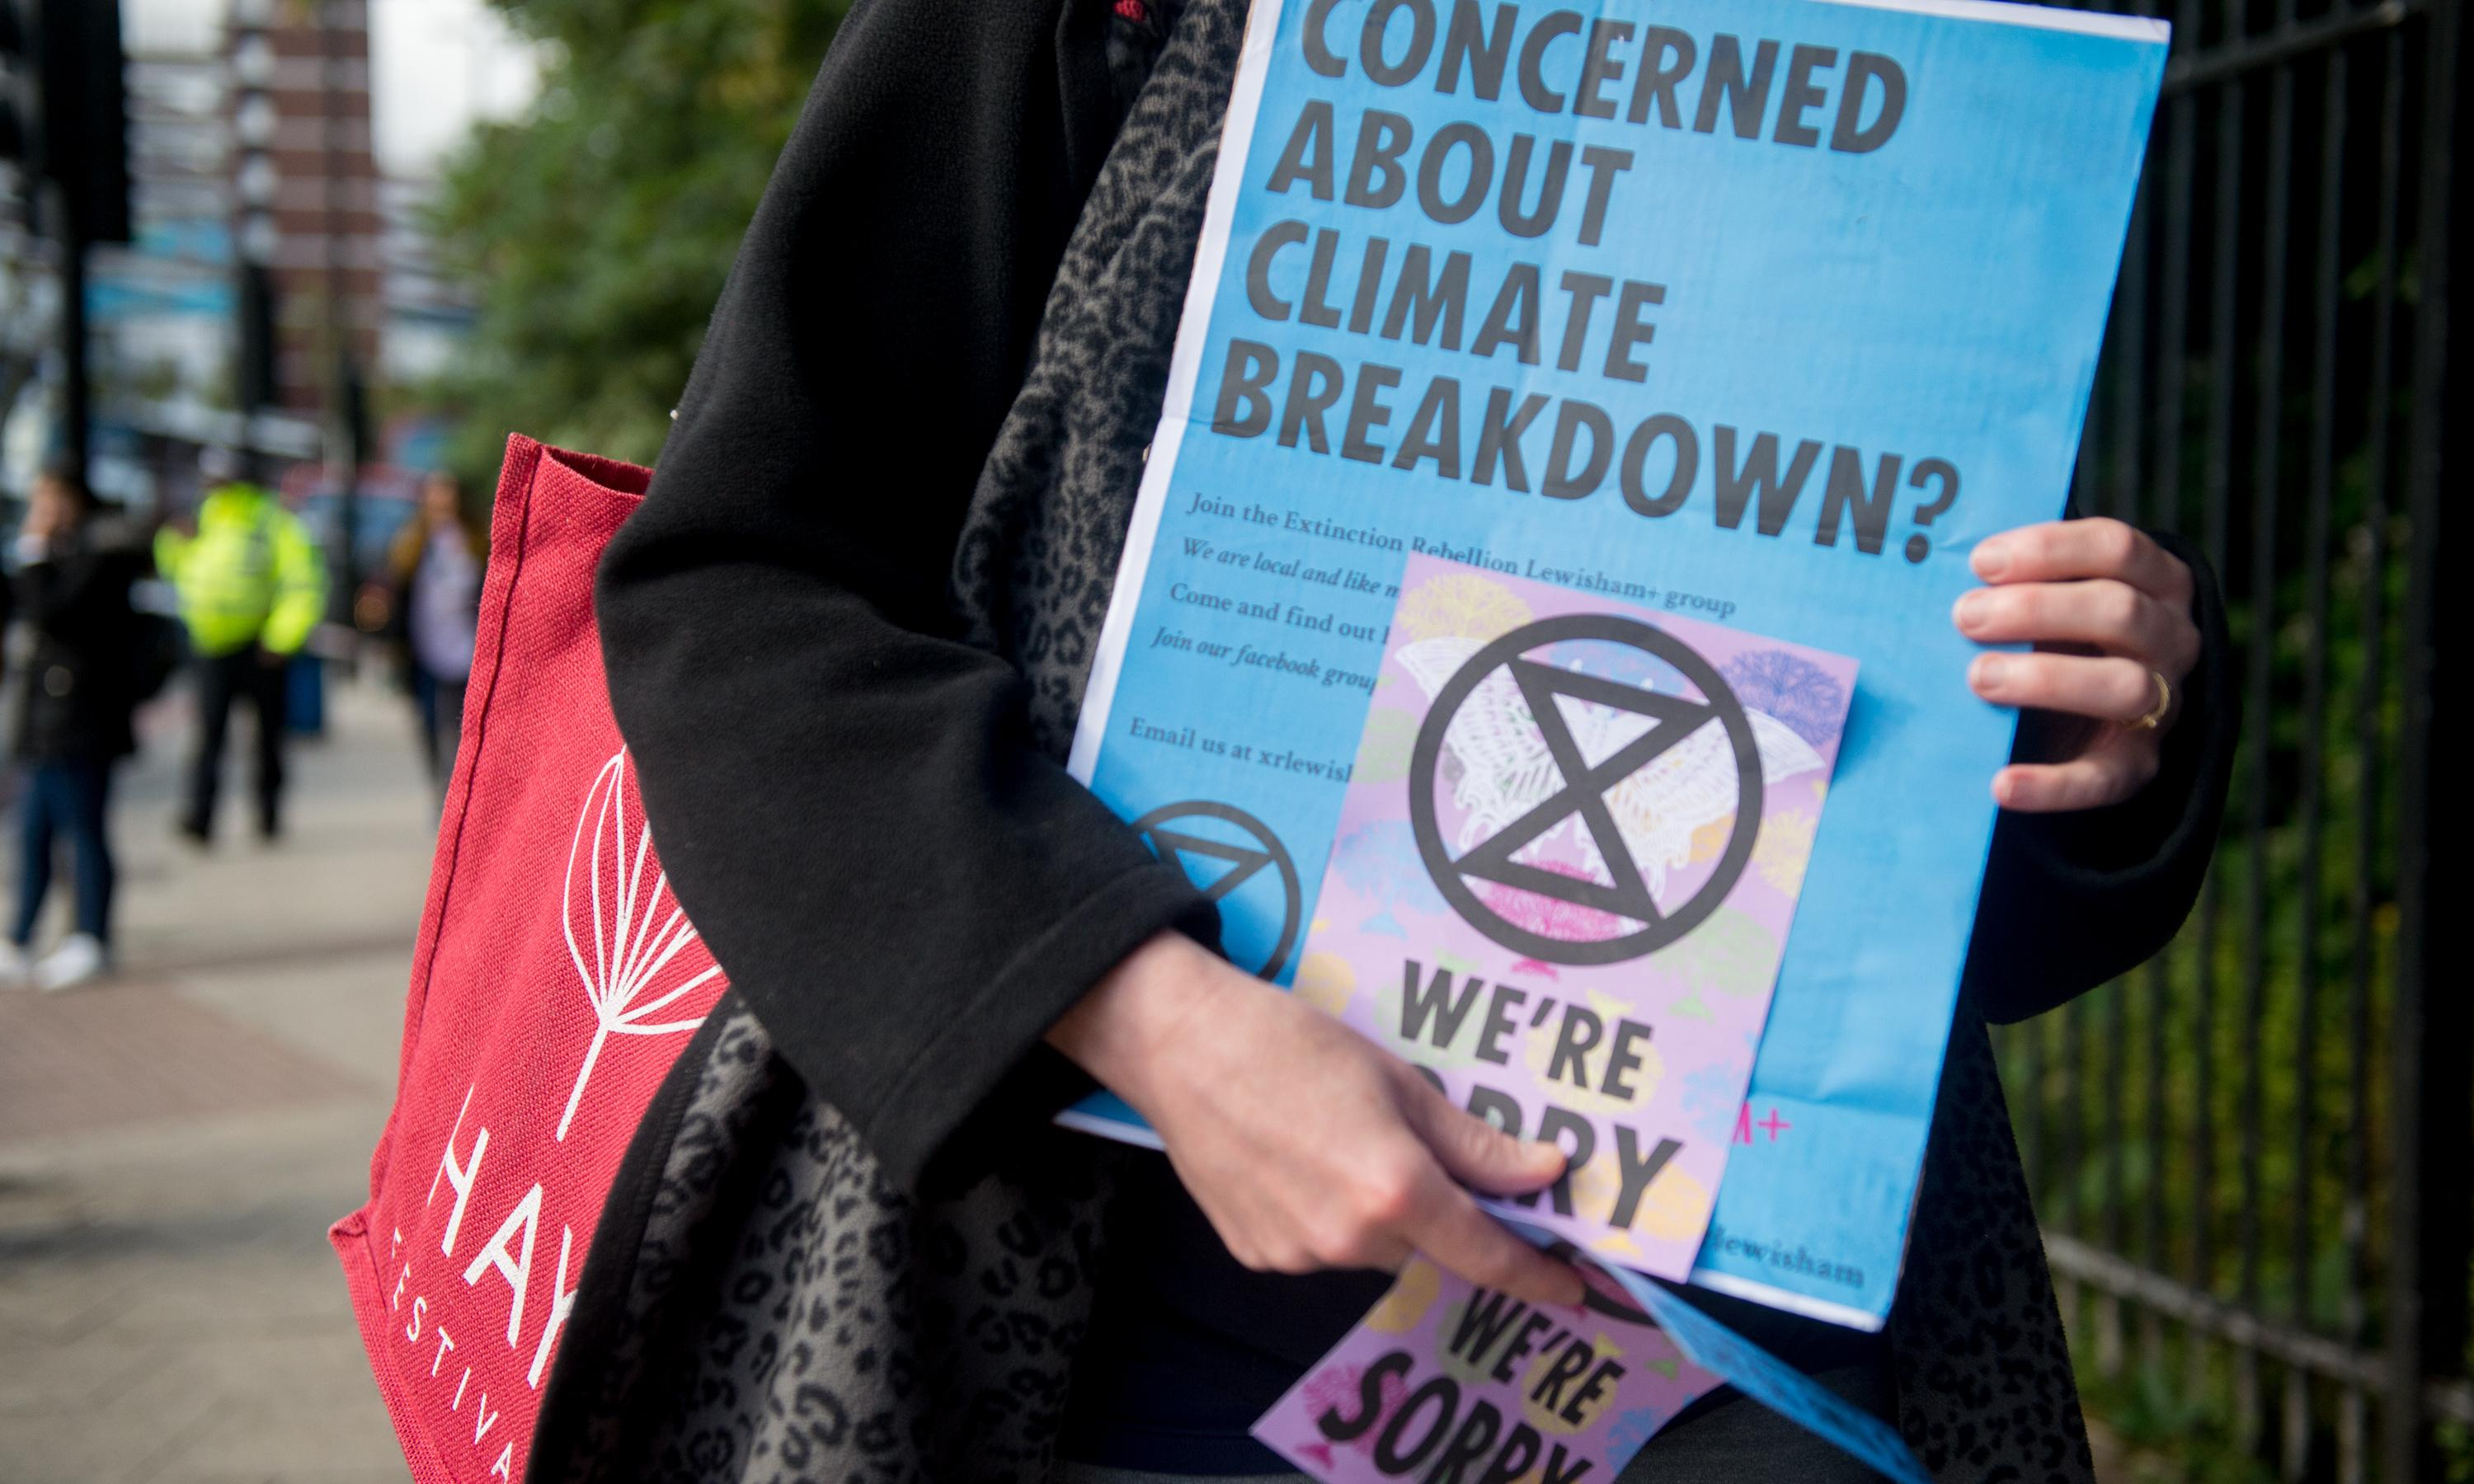 UK citizens' assembly on climate emergency announced